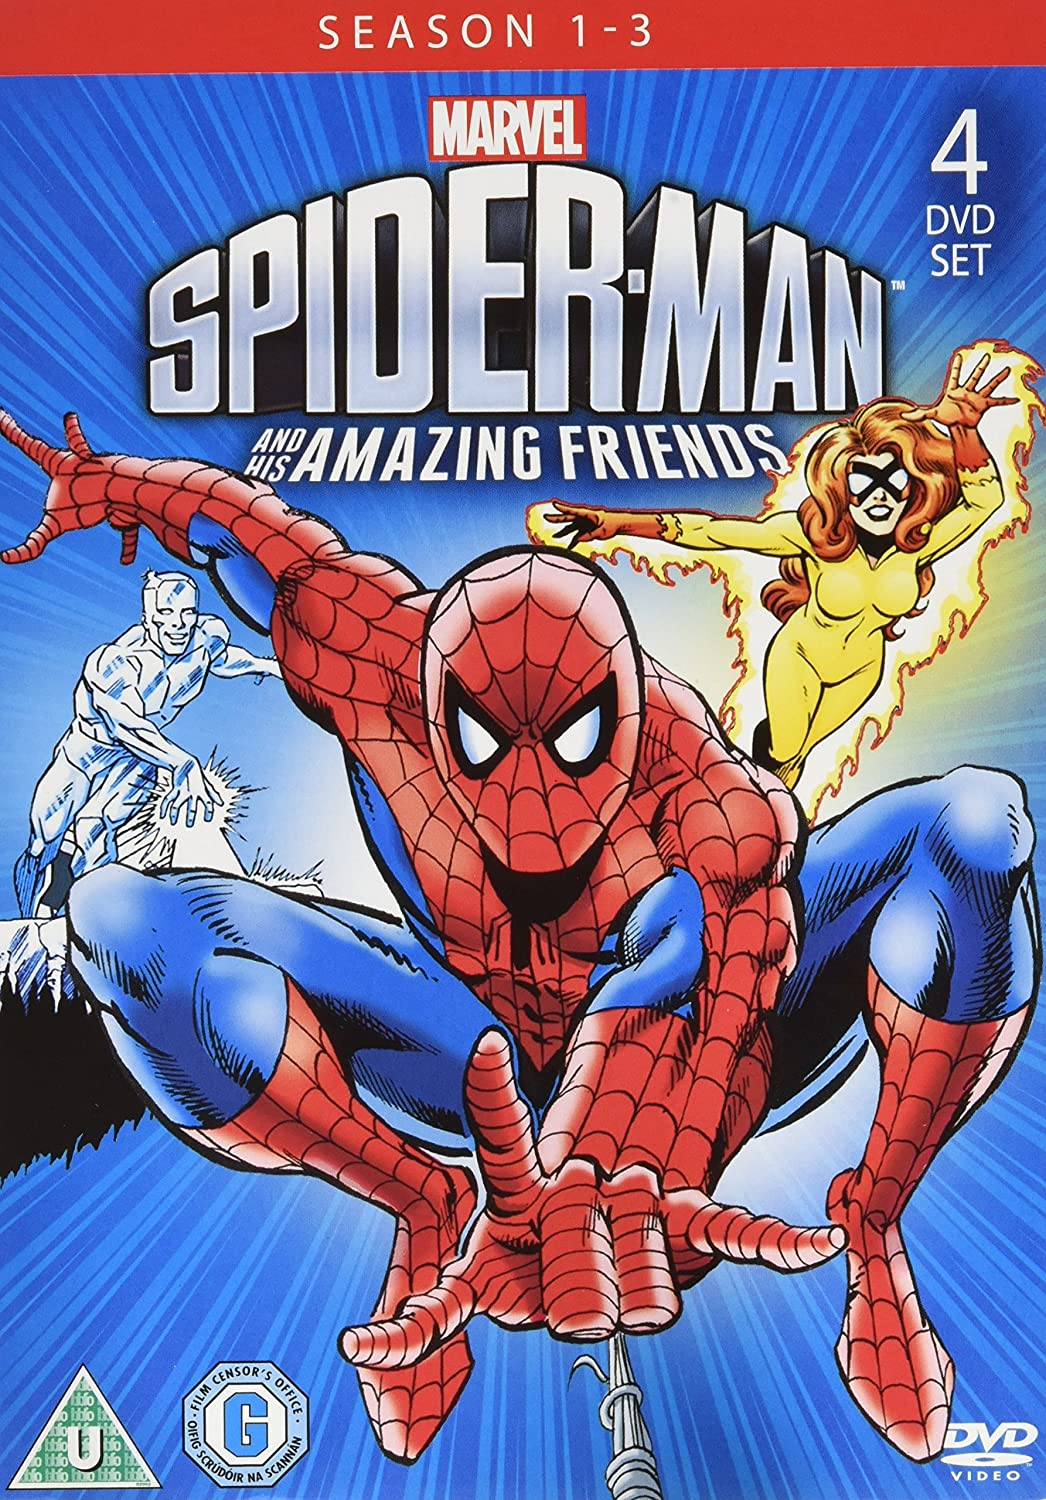 Spider - Man & His Amazing Friends Season 1 - 3 4DVD Marvel ...